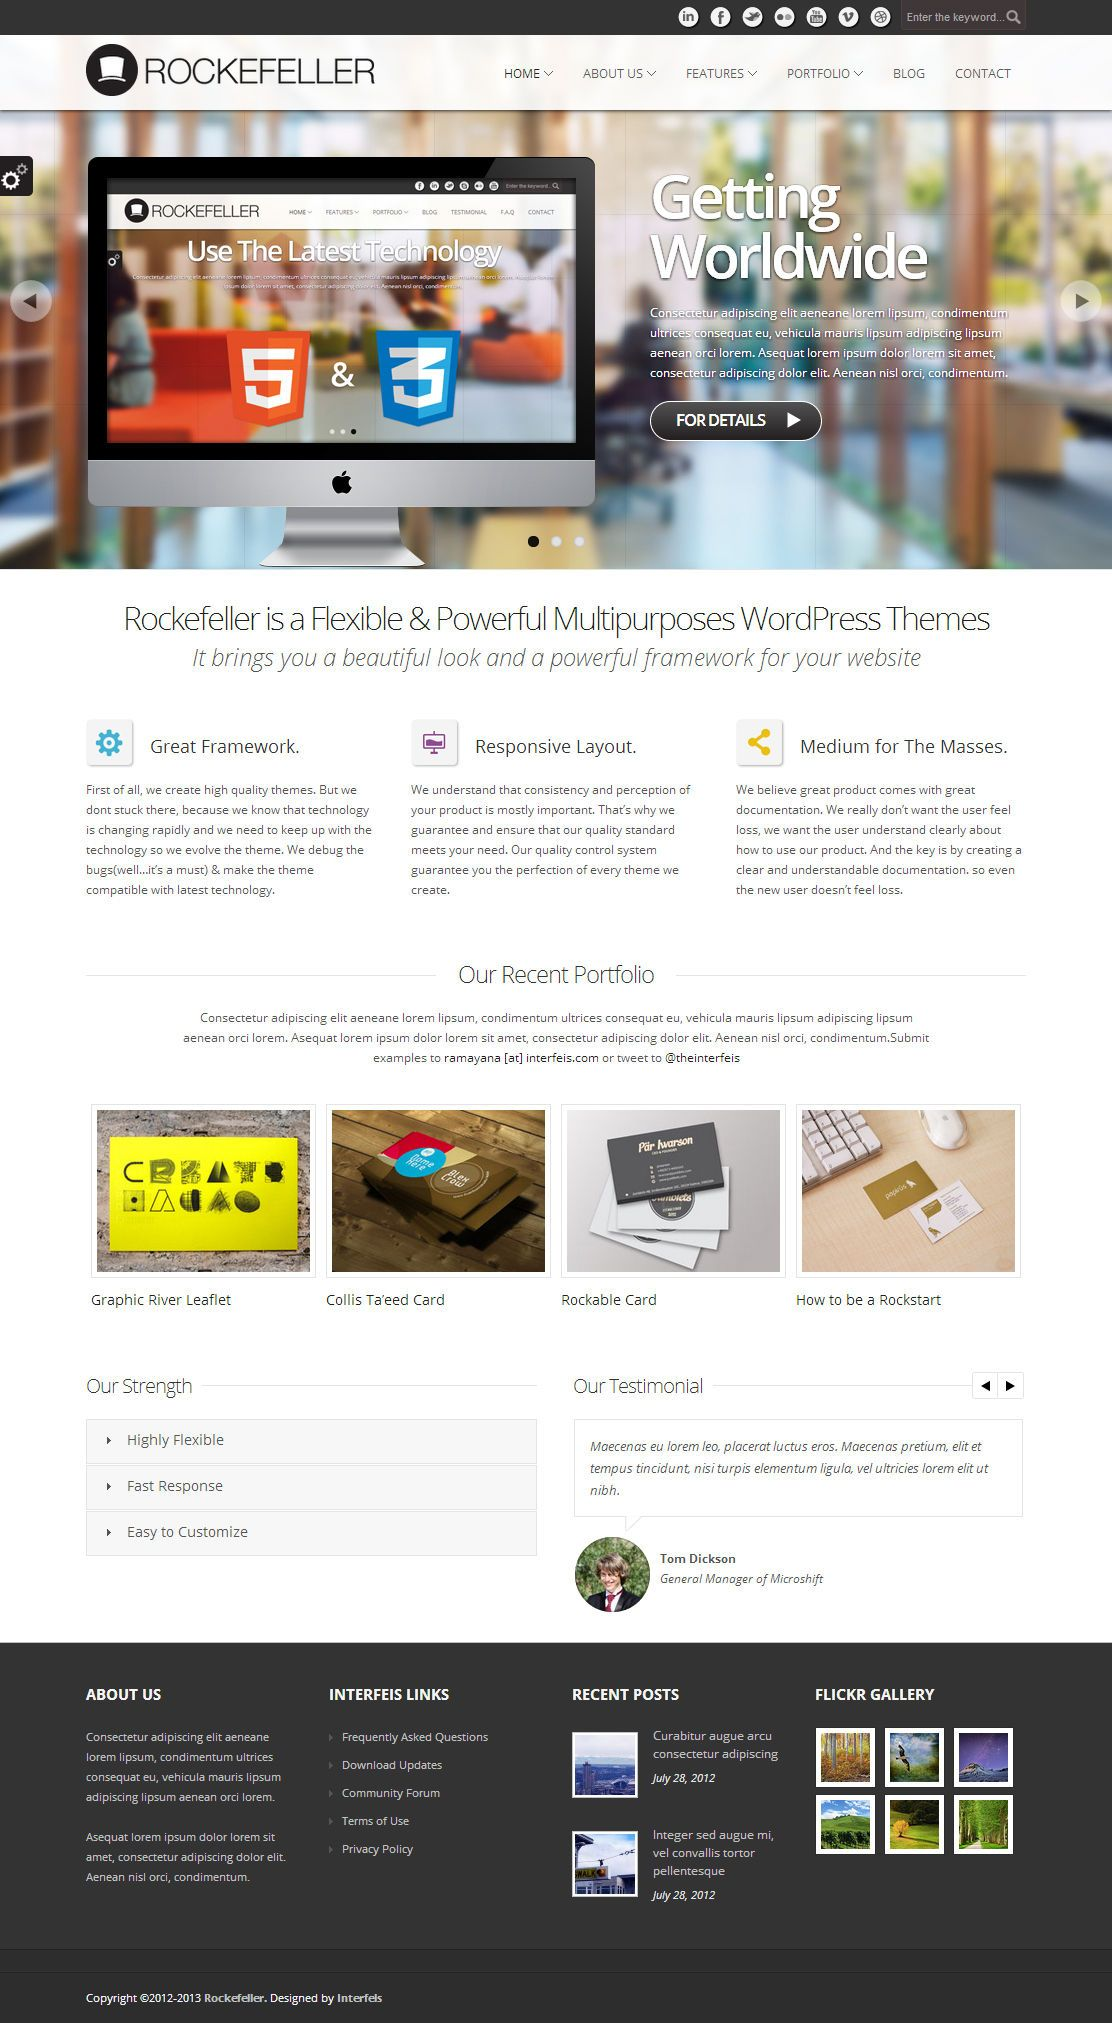 Rockefeller is a flexible and clean wordpress theme suitable for portfolio, corporate, business, photography, blog and any kind of websites.